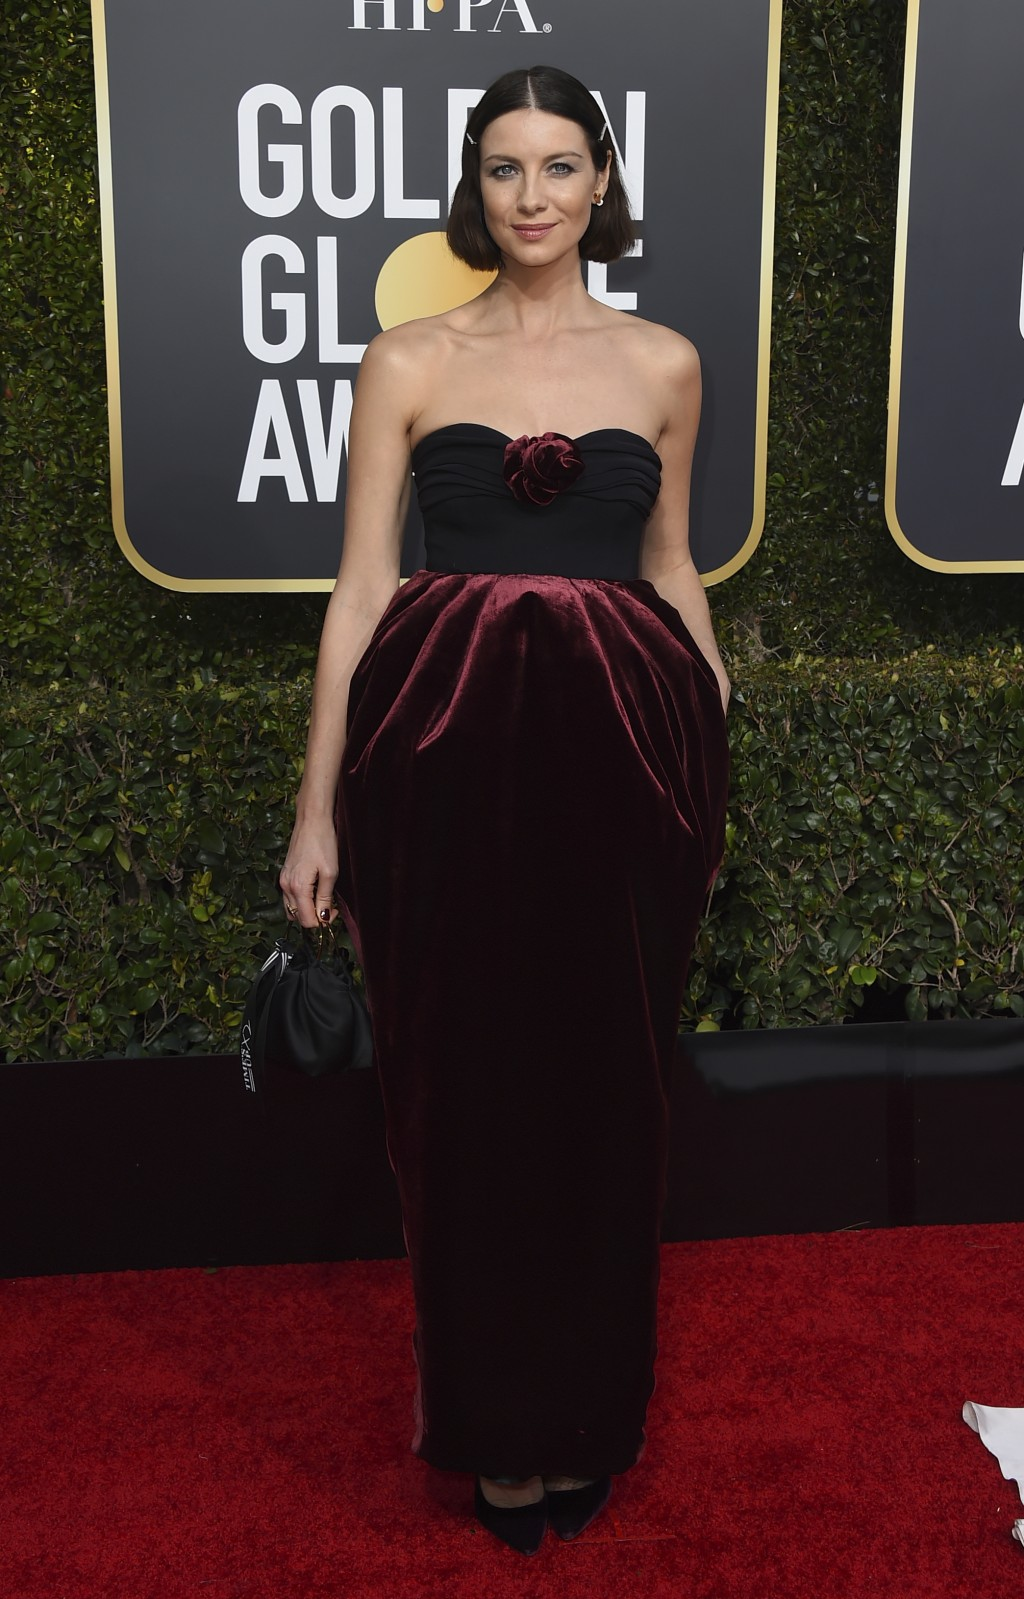 Caitriona Balfe arrives at the 76th annual Golden Globe Awards at the Beverly Hilton Hotel on Sunday, Jan. 6, 2019, in Beverly Hills, Calif. (Photo by